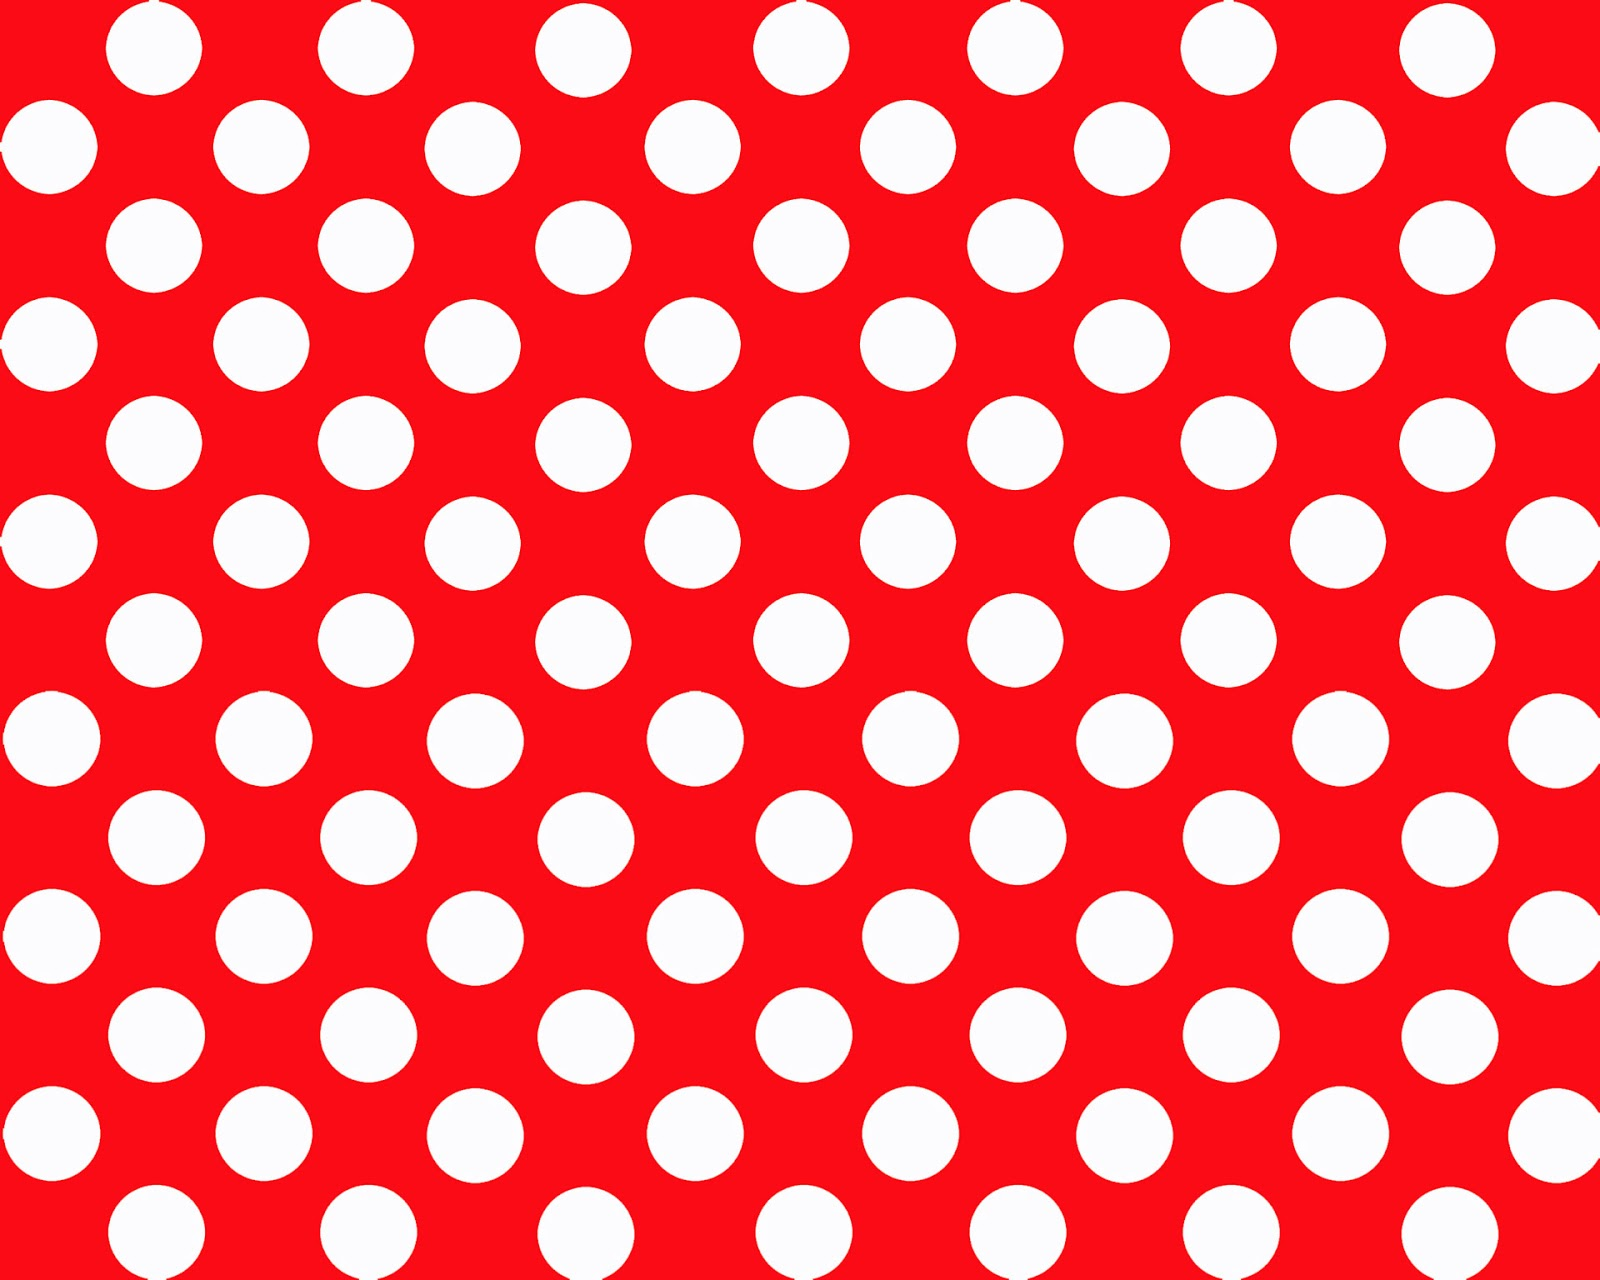 navy blue and yellow polka dot background navy blue and yellow